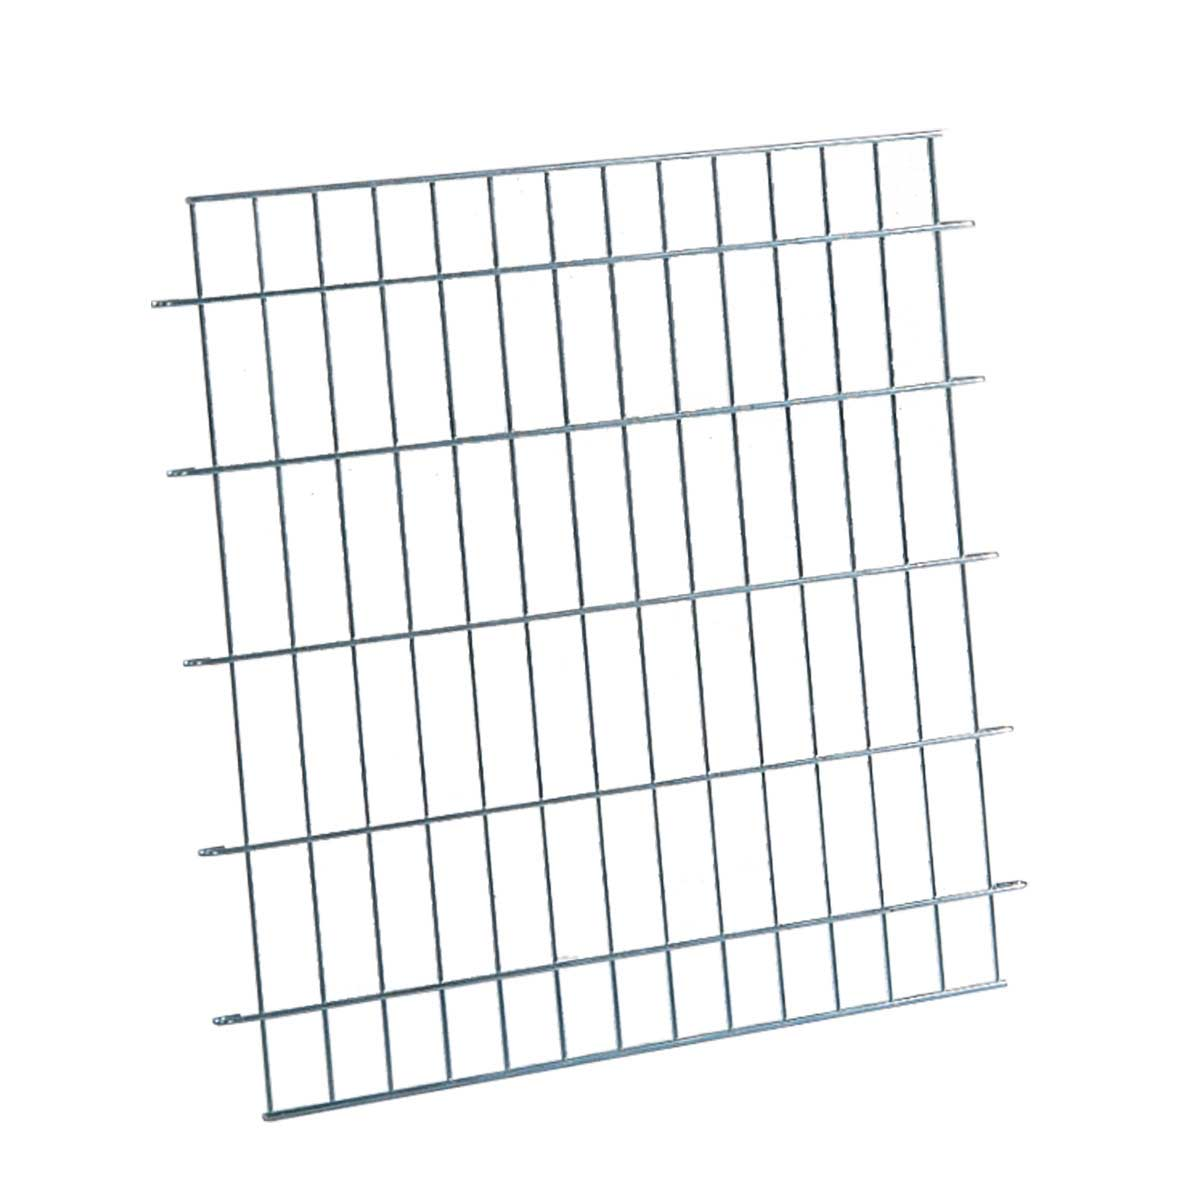 Midwest Divider Panel Fits Dog Kennels: M1524 M1524DD, M1924, M1924DD